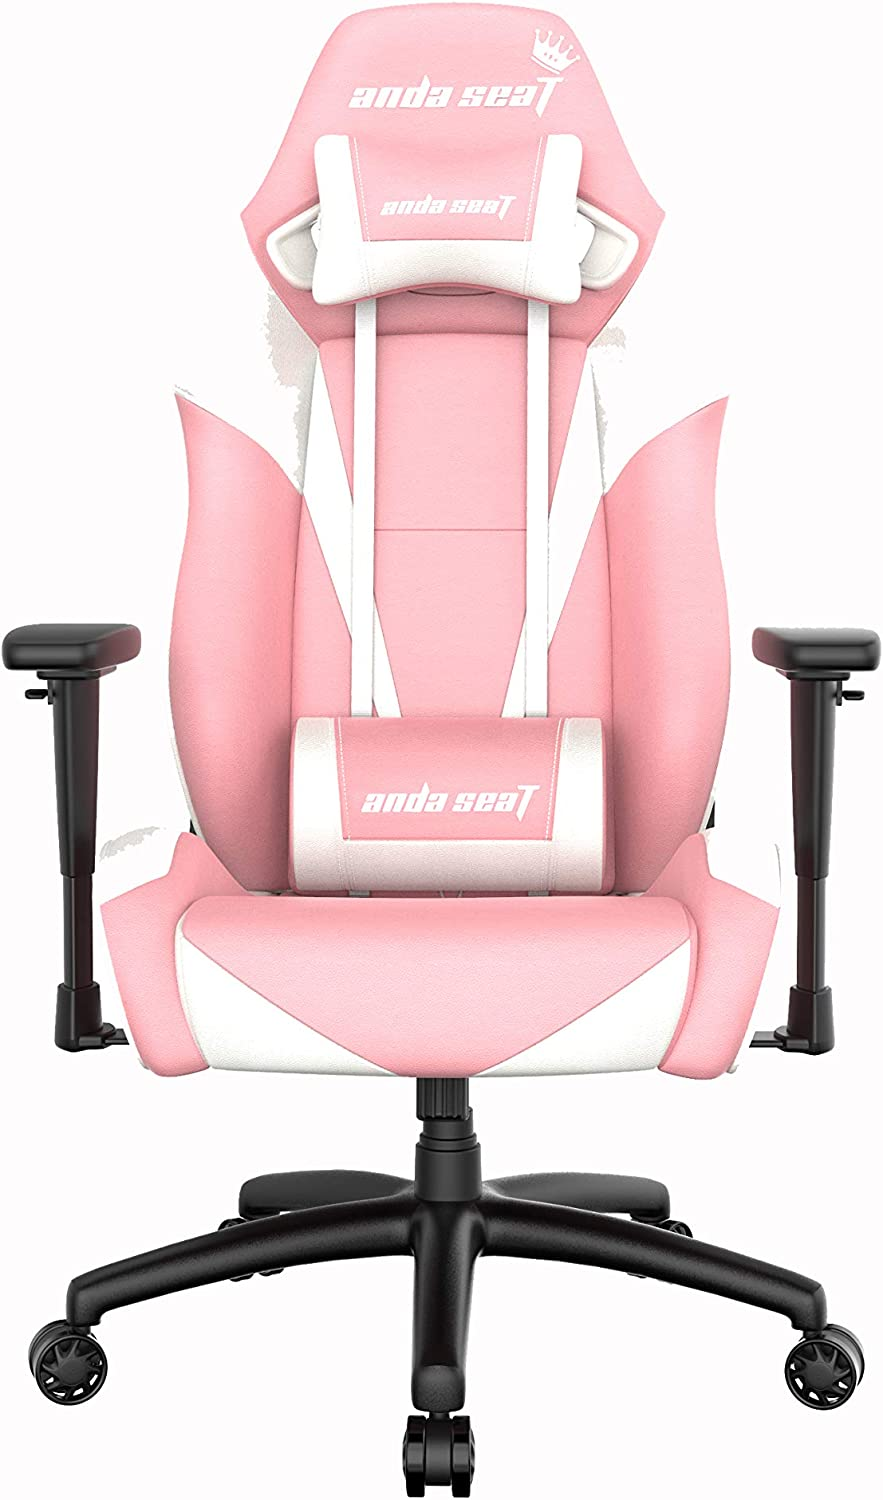 Anda Seat Pretty in Pink Gaming Chair